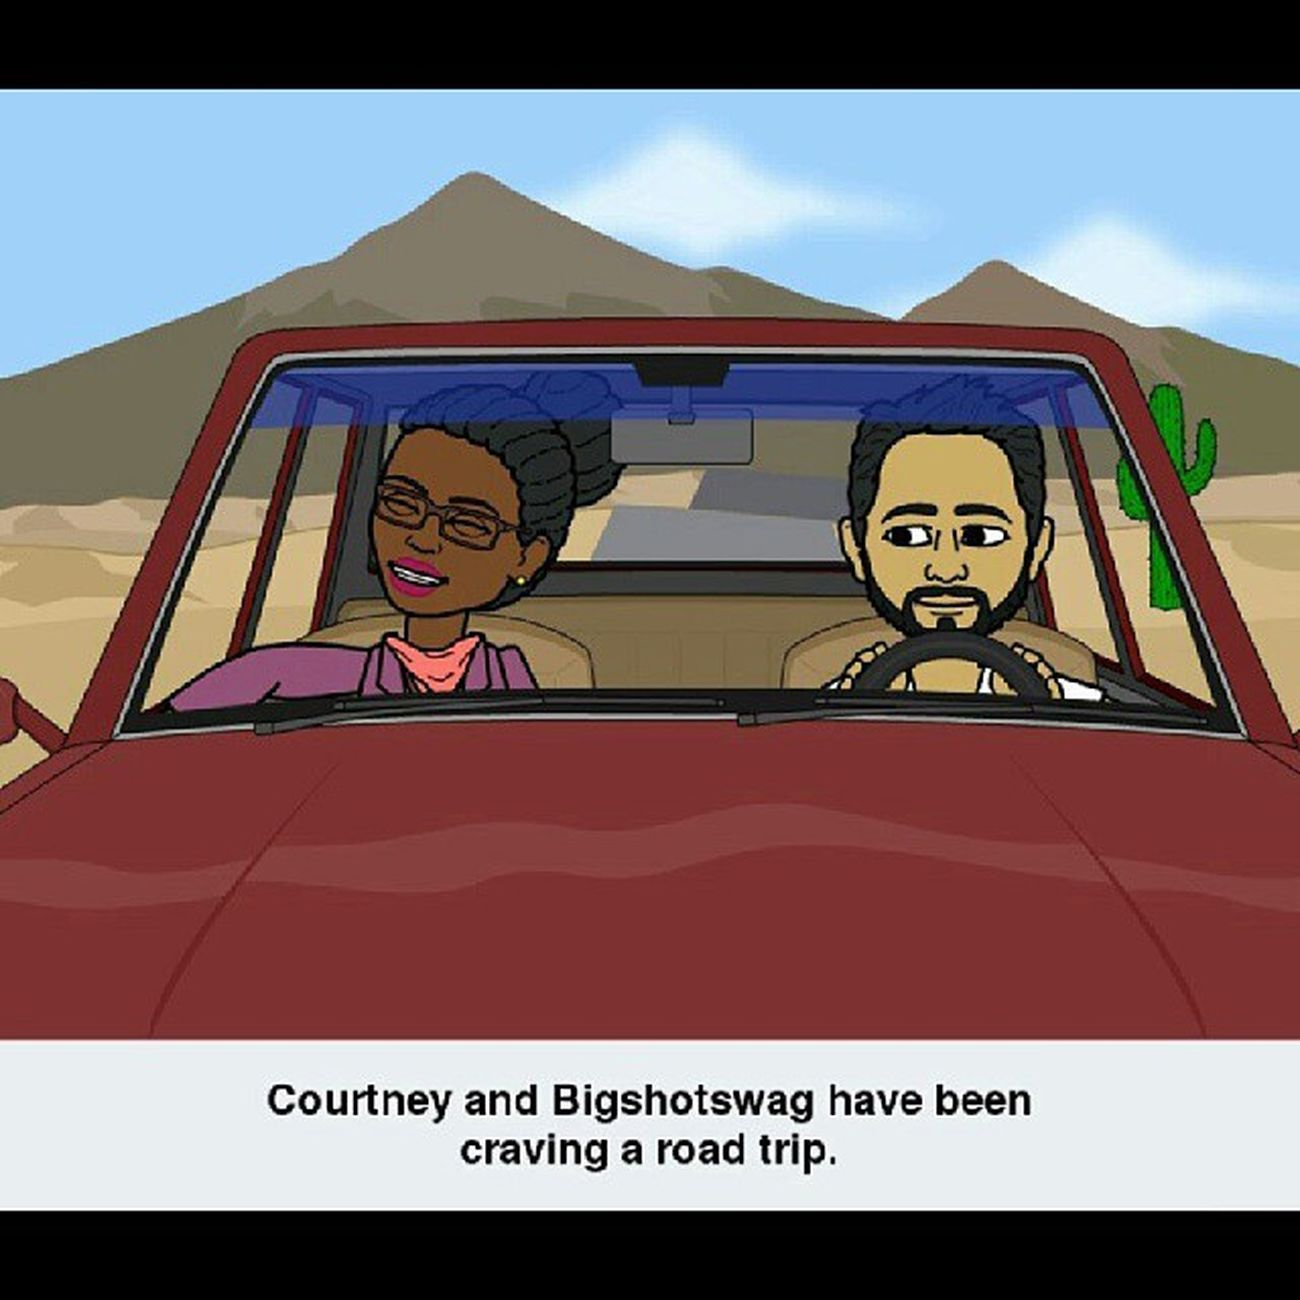 Yeah...we're overdue for one Roadtrip Bitstrip Bitsrips